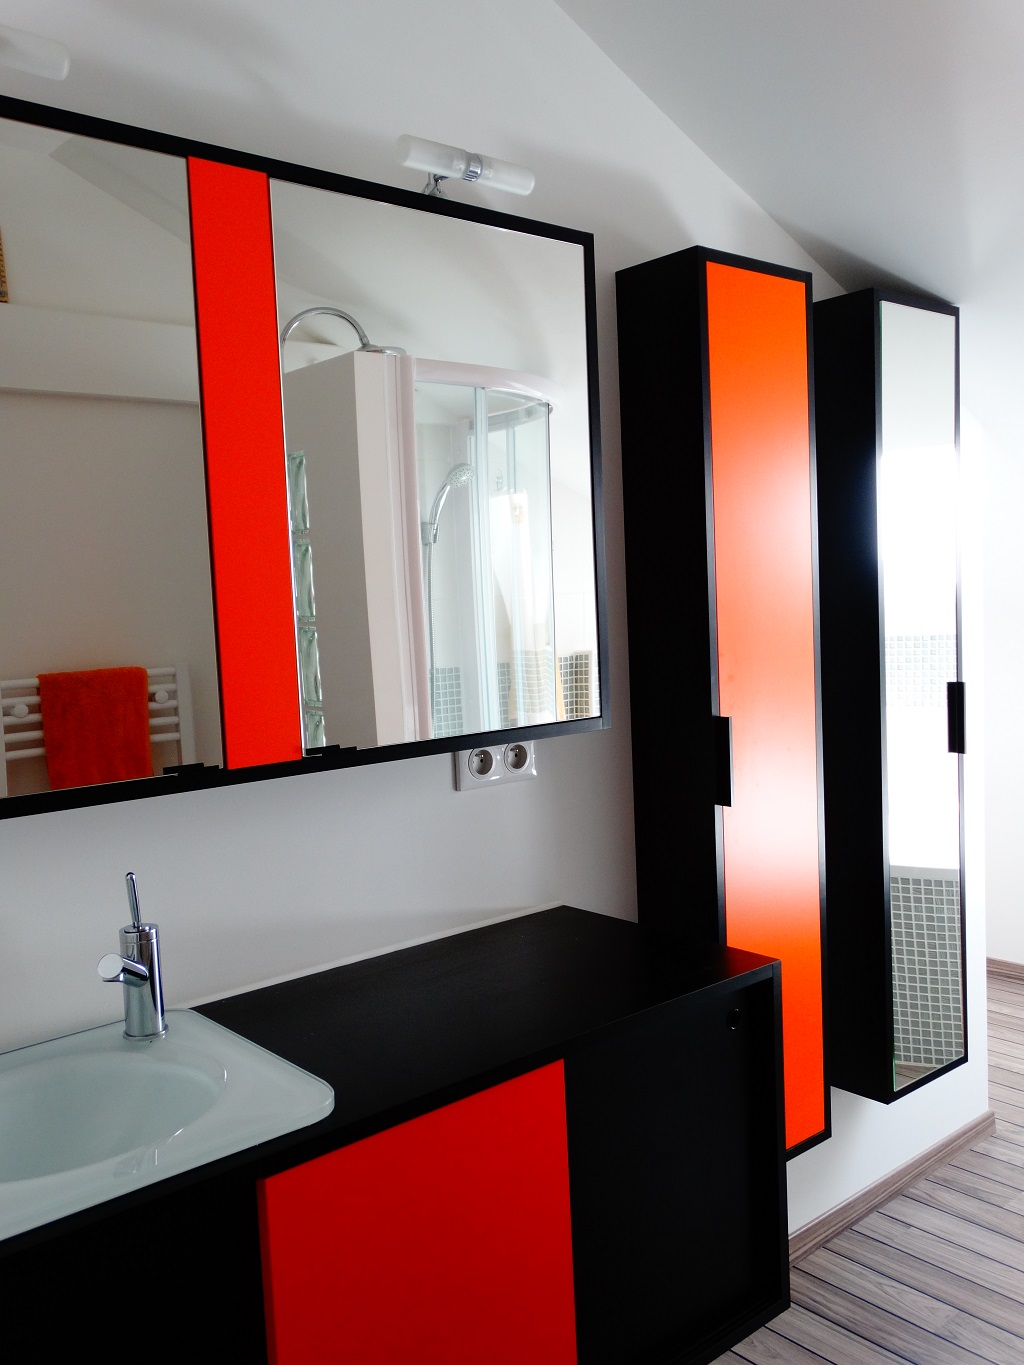 agencement salle de bains orange et noir par l 39 atelier 1053. Black Bedroom Furniture Sets. Home Design Ideas